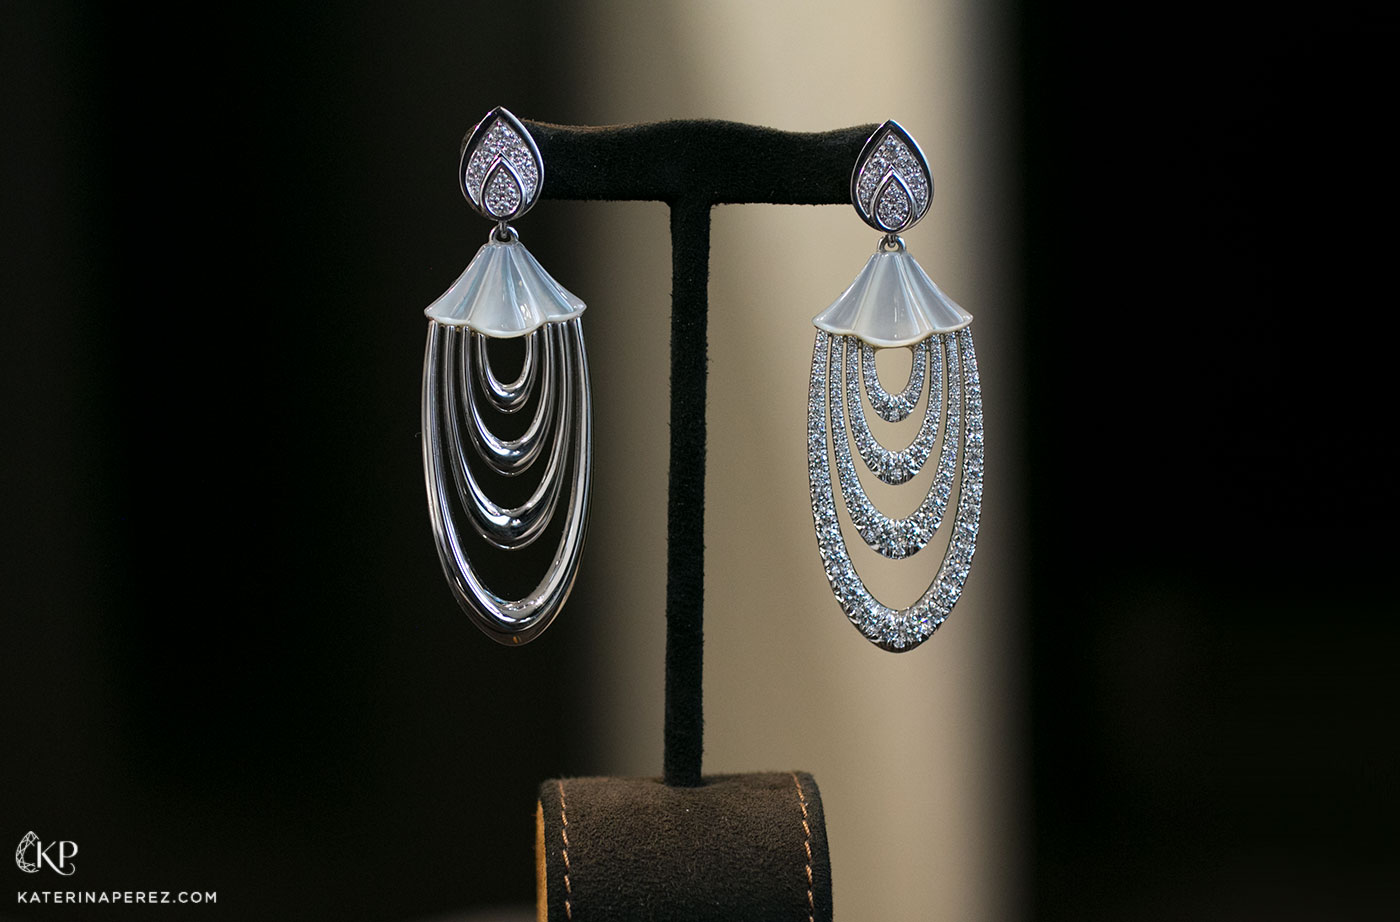 AVAKIAN Tosca earrings with the drops that can be worn with diamond or plain gold facing outwards